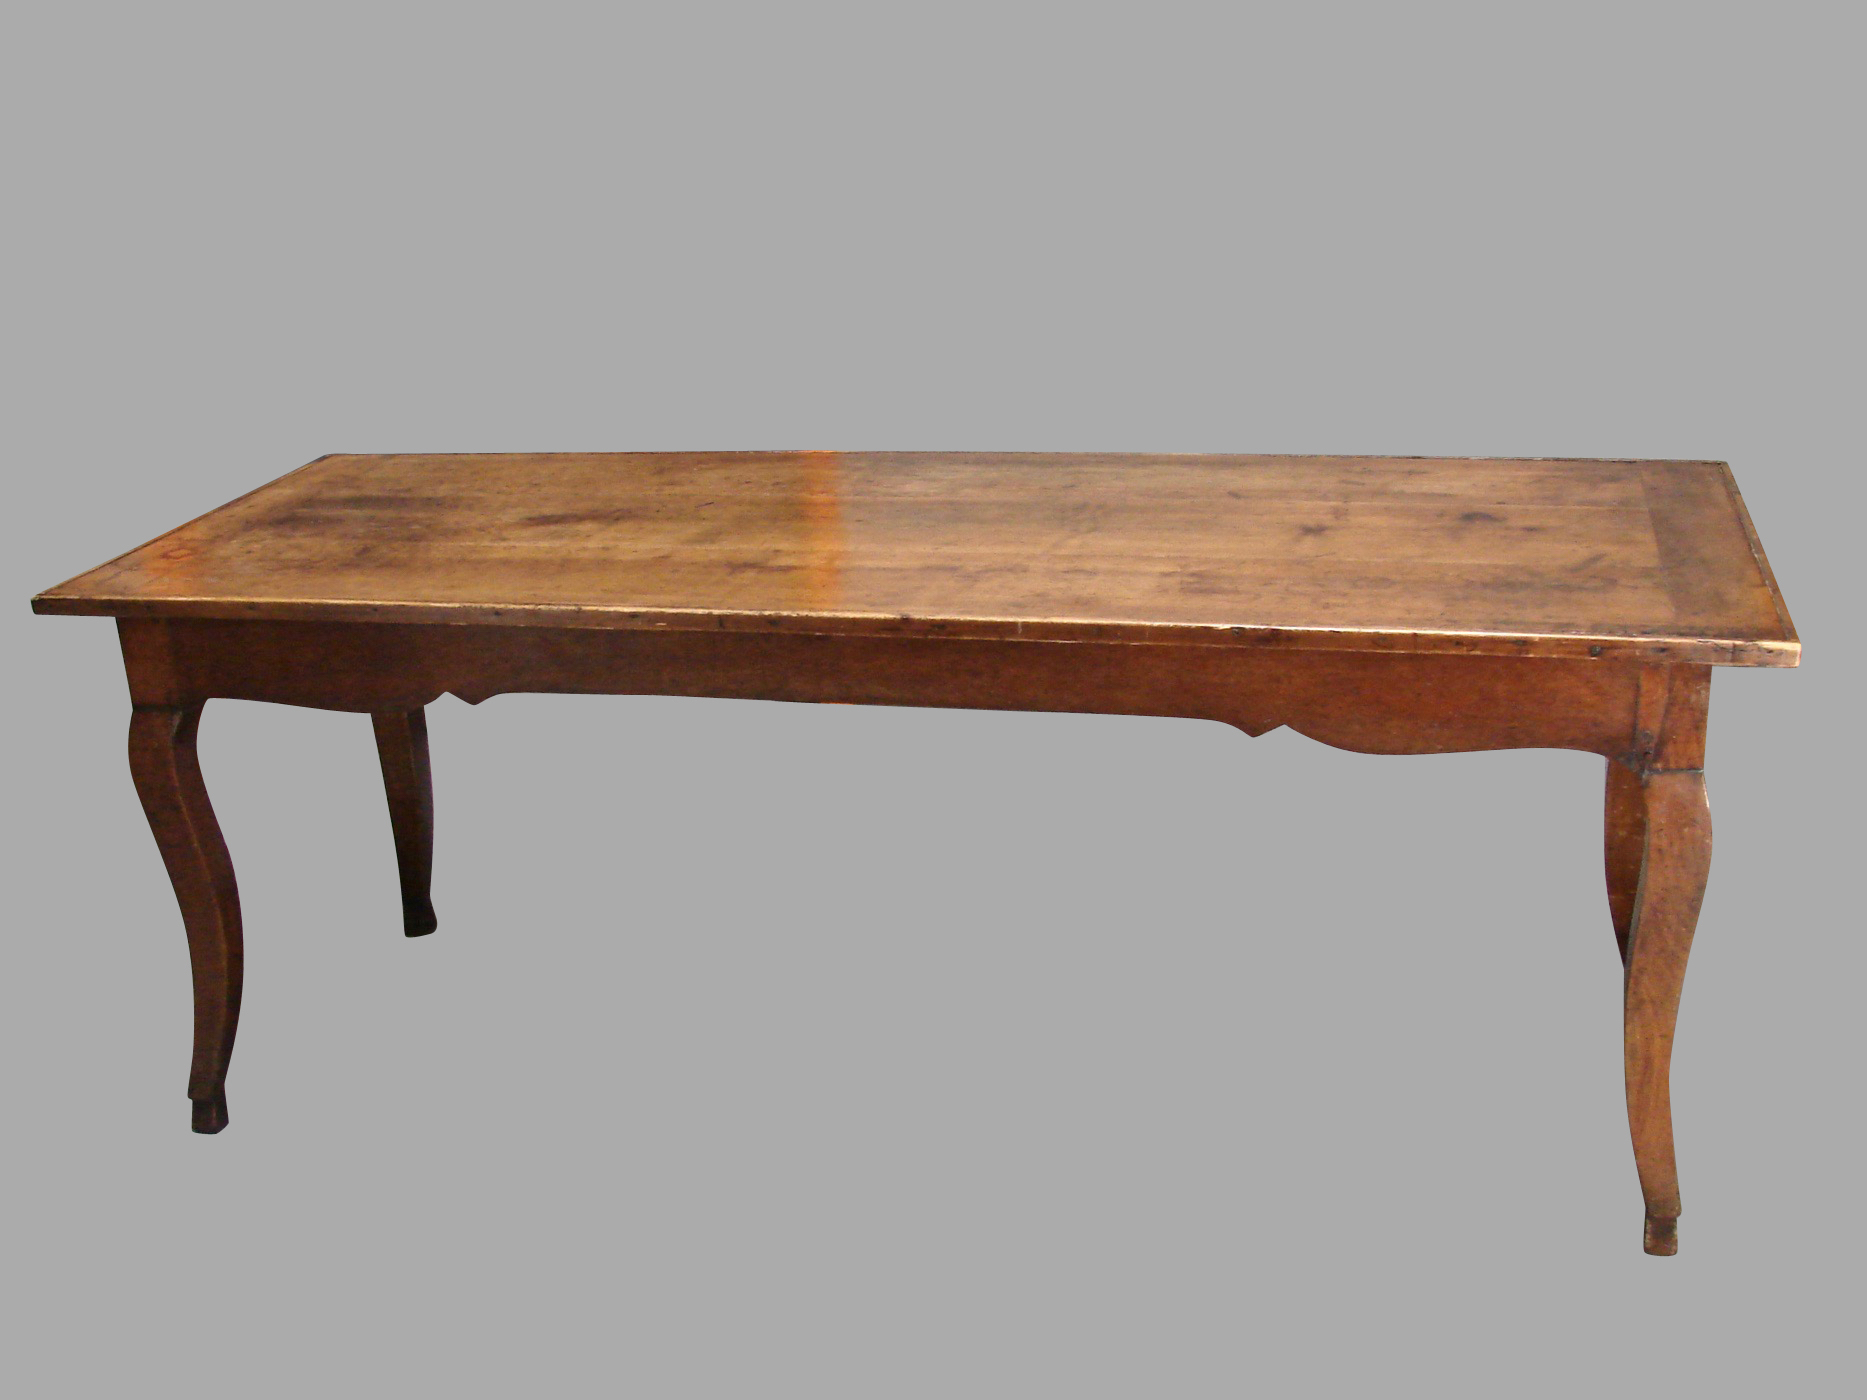 19th Century French Fruitwood Farm Table with Long Drawer | DANIEL STEIN Antiques San Francisco CA